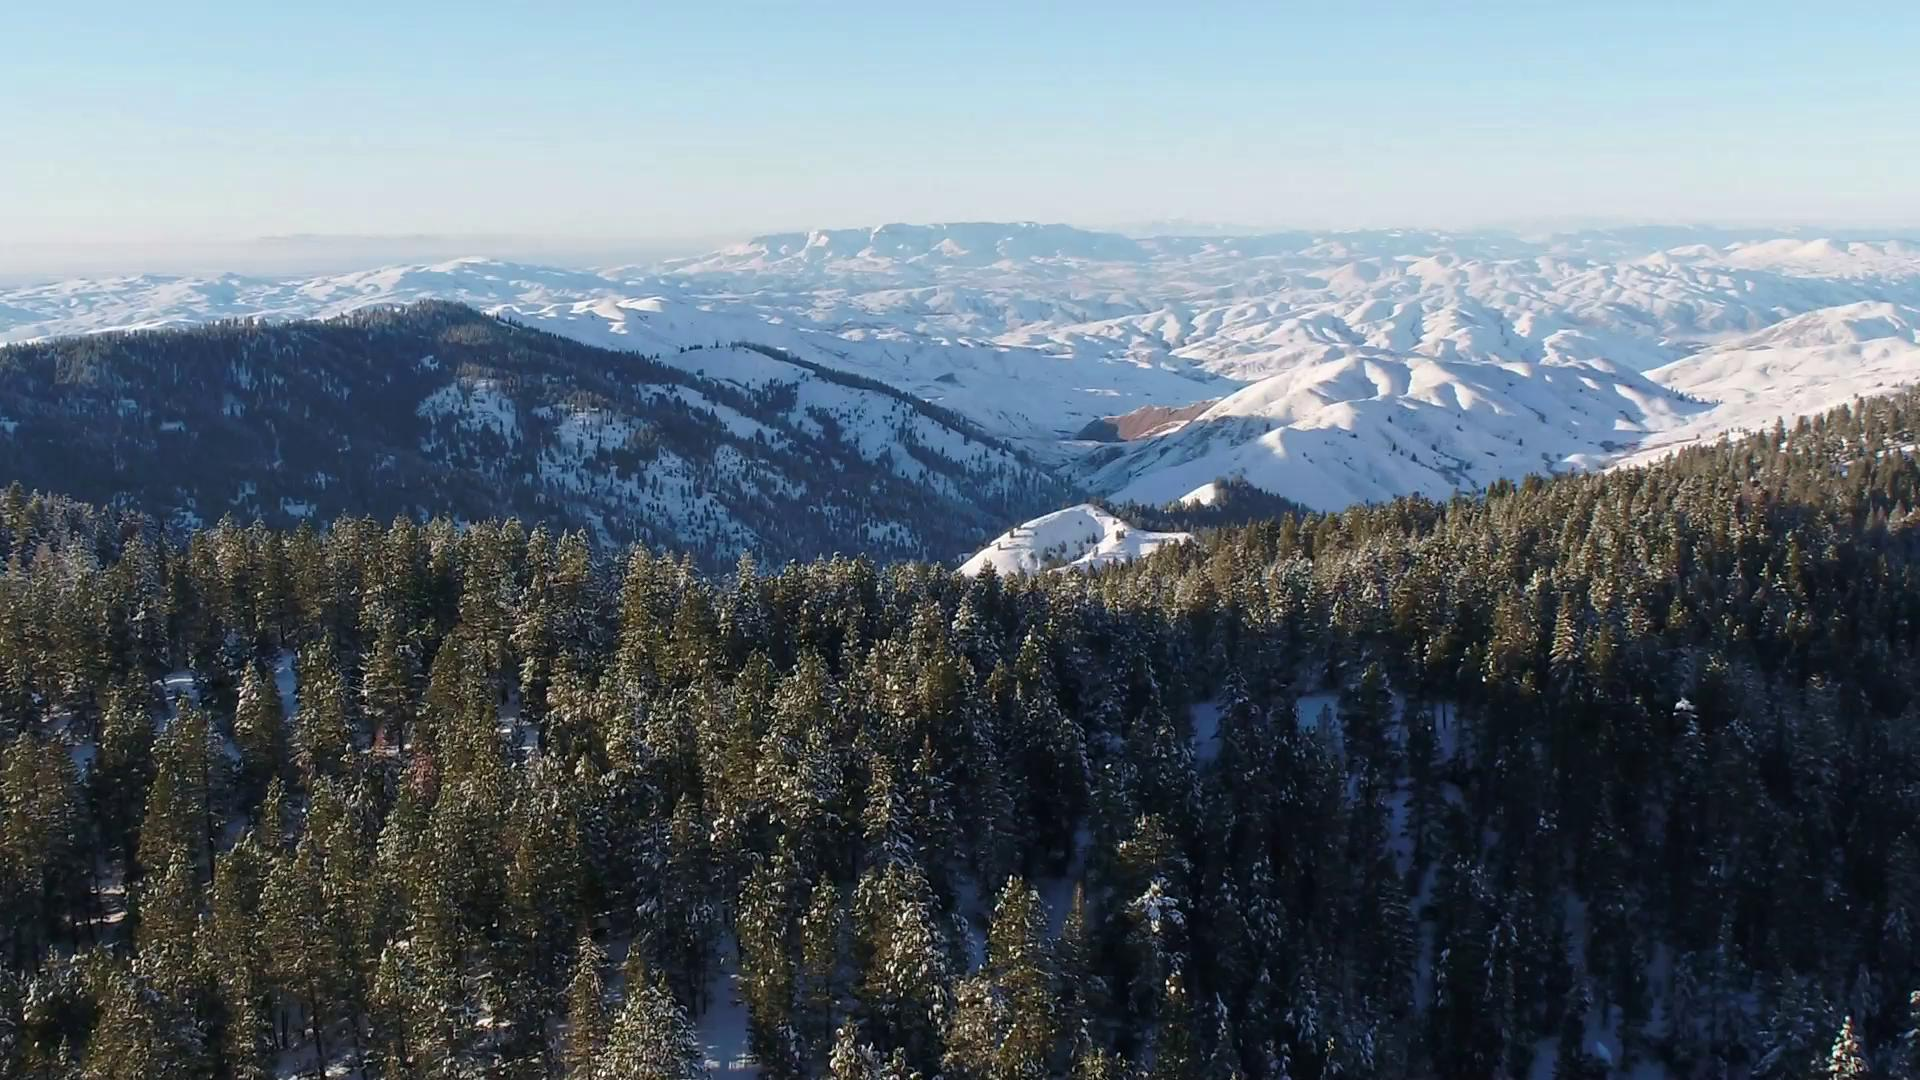 WATCH: Bogus Basin snow from above